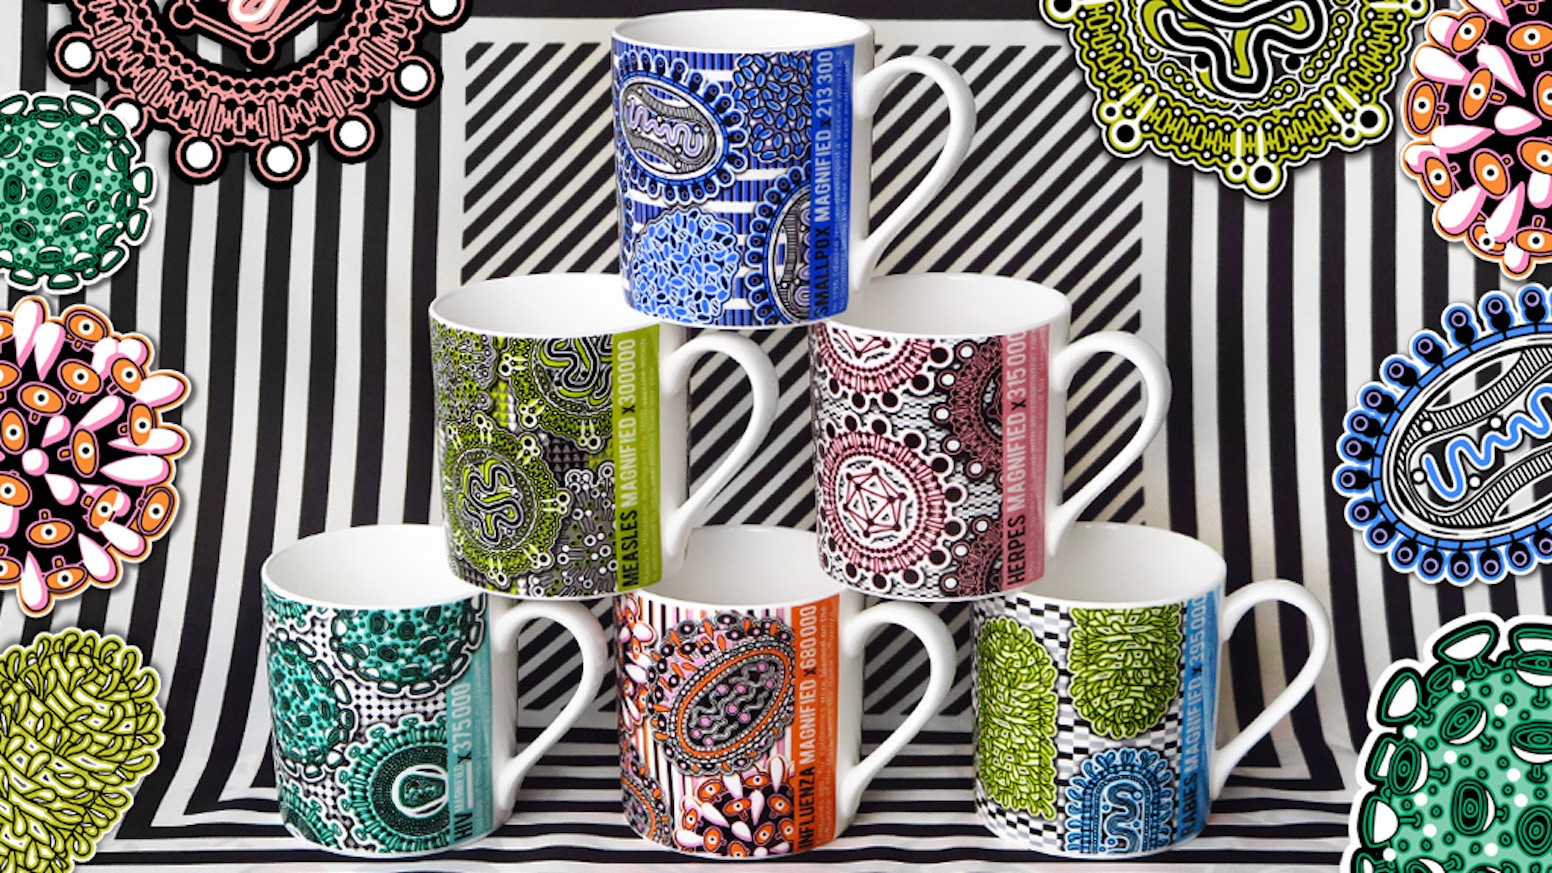 Six mugs featuring illustrations of viruses. For design nerds, science geeks and tea & coffee lovers! Hand decorated in Stoke-On-Trent.